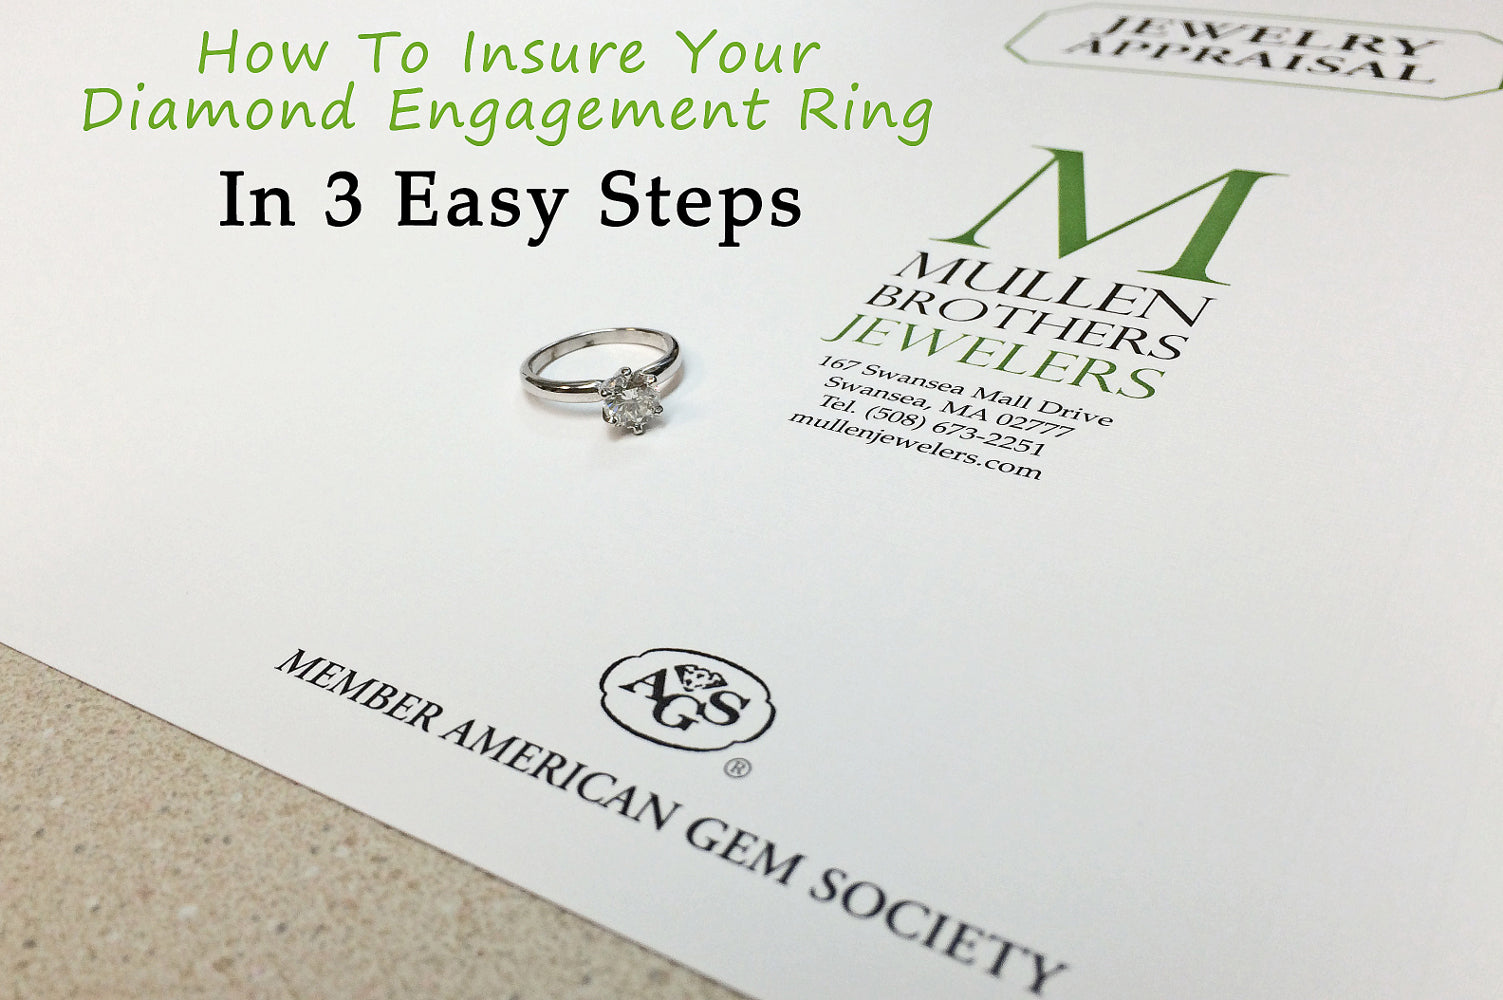 How To Insure Your Diamond Engagement Ring In 3 Easy Steps